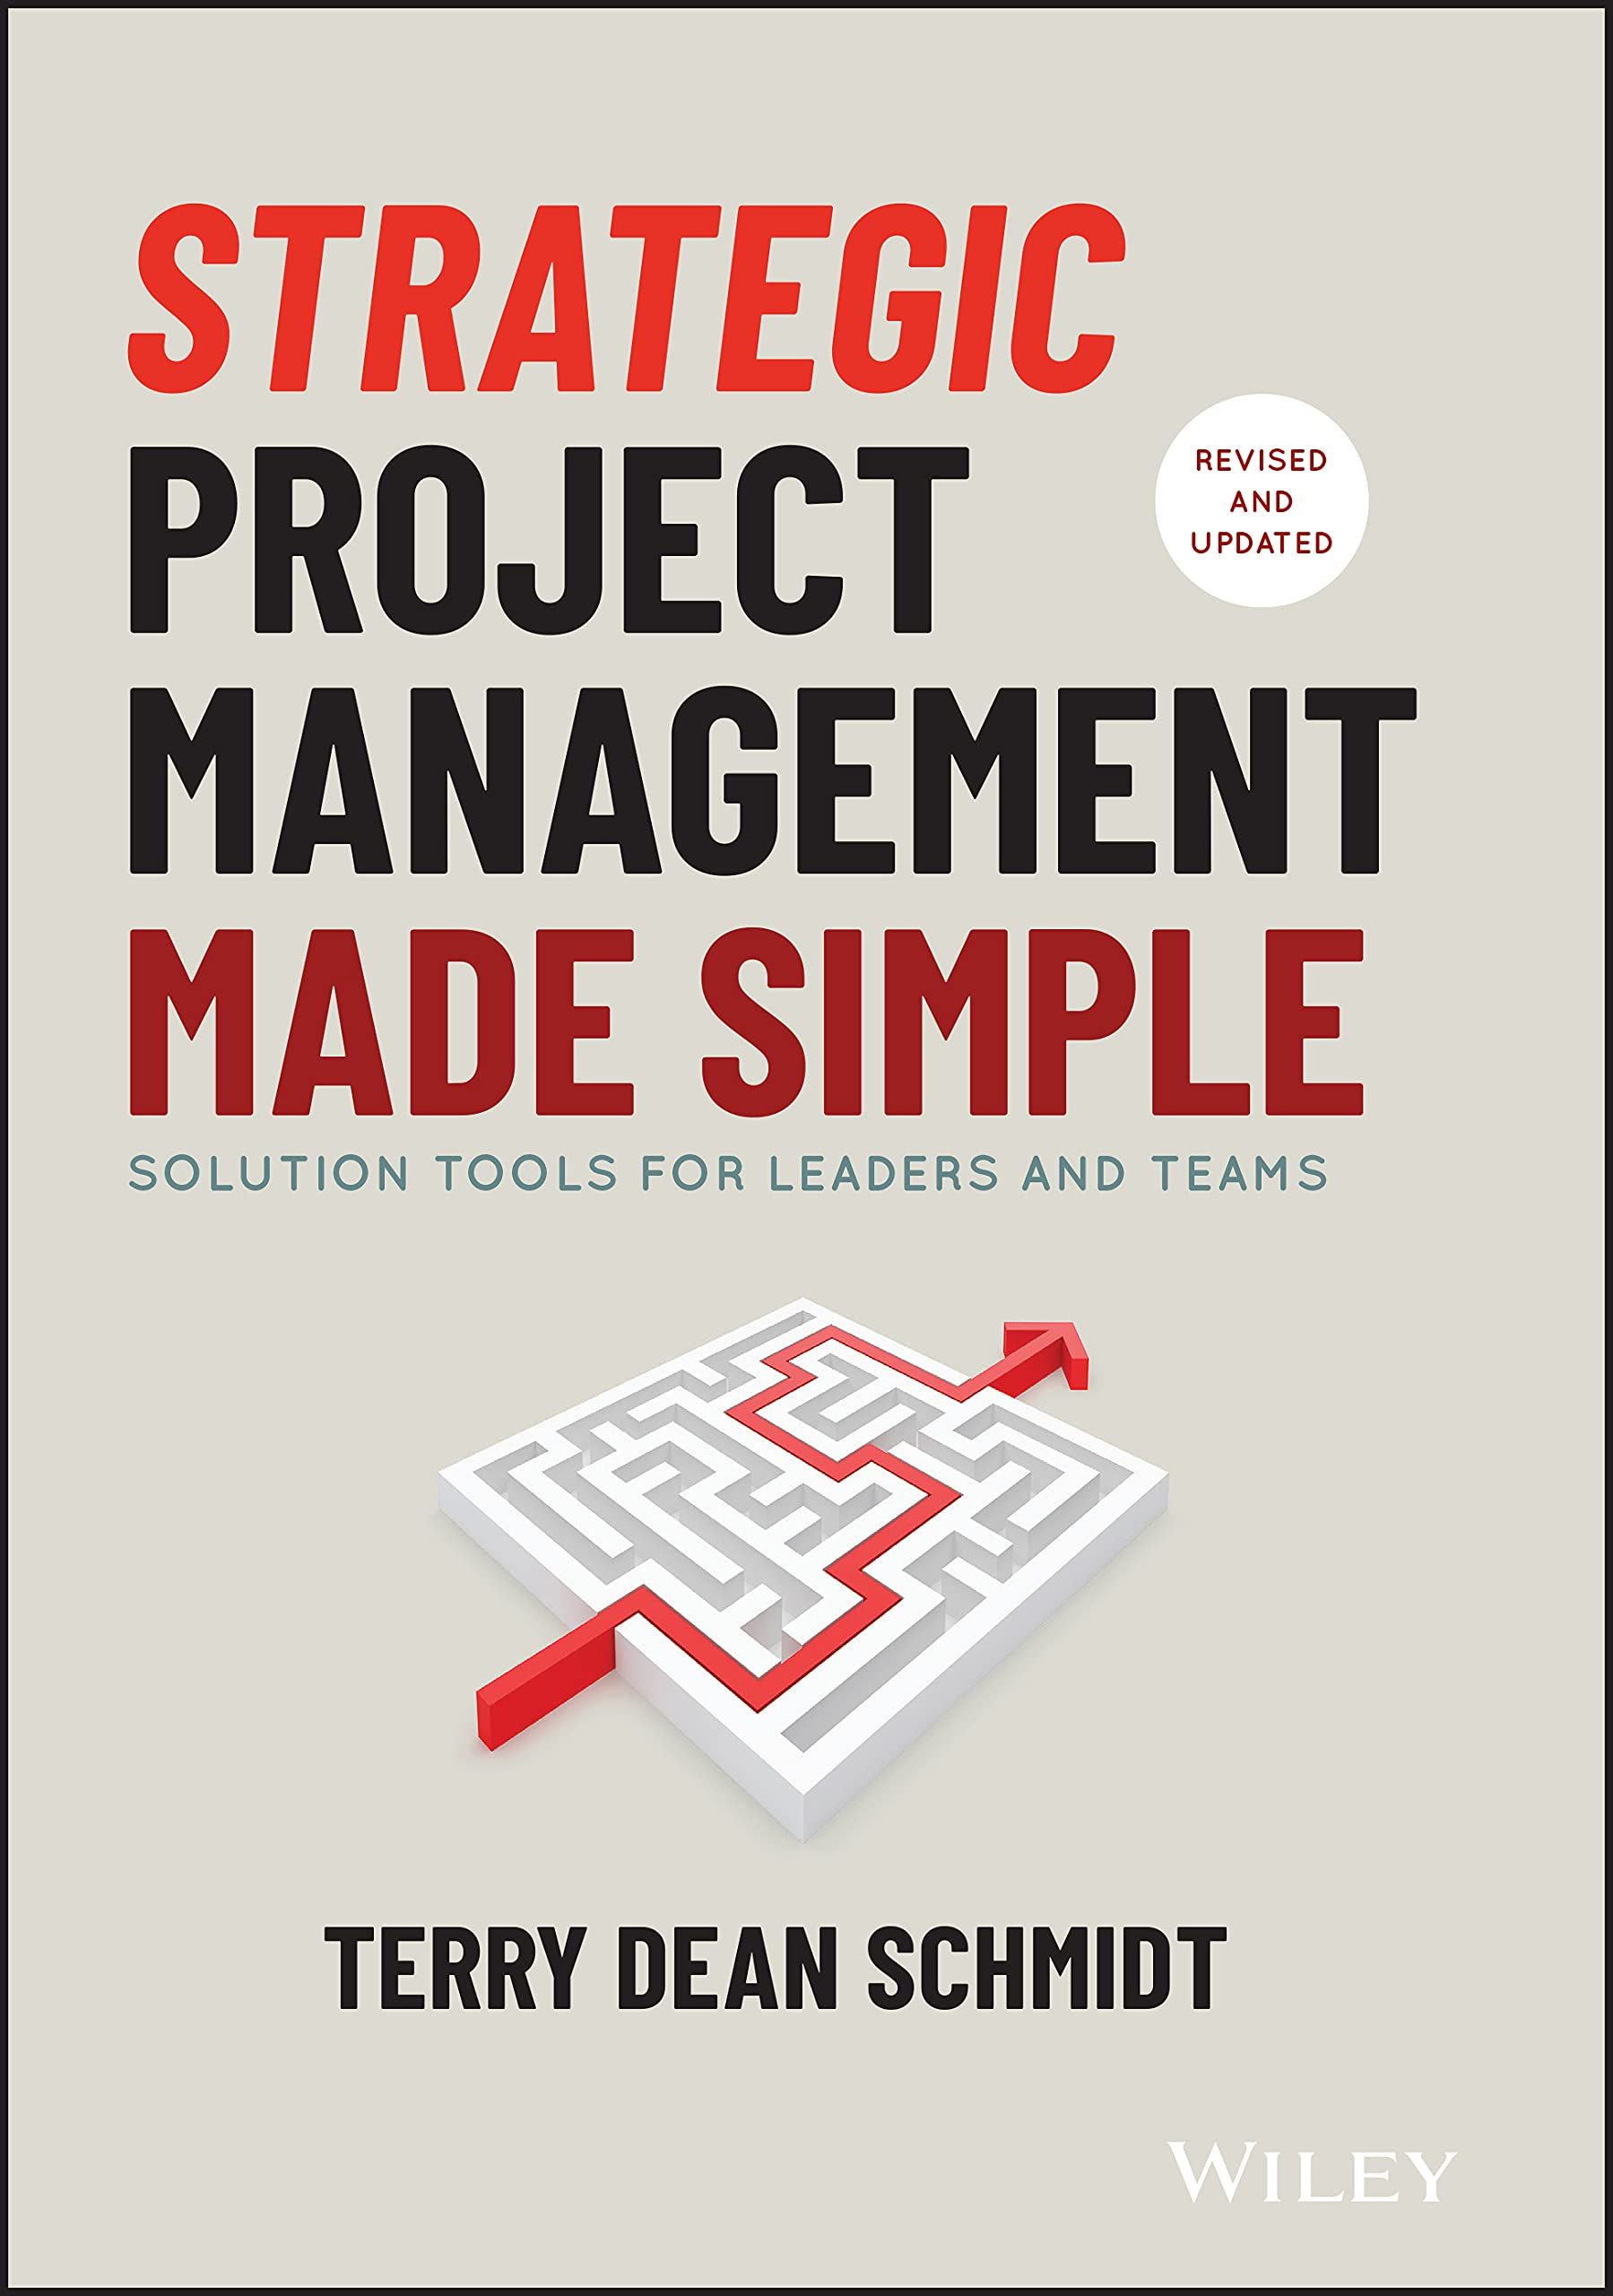 Strategic Project Management Made Simple: Solution Tools for Leaders and Teams, 2nd Edition